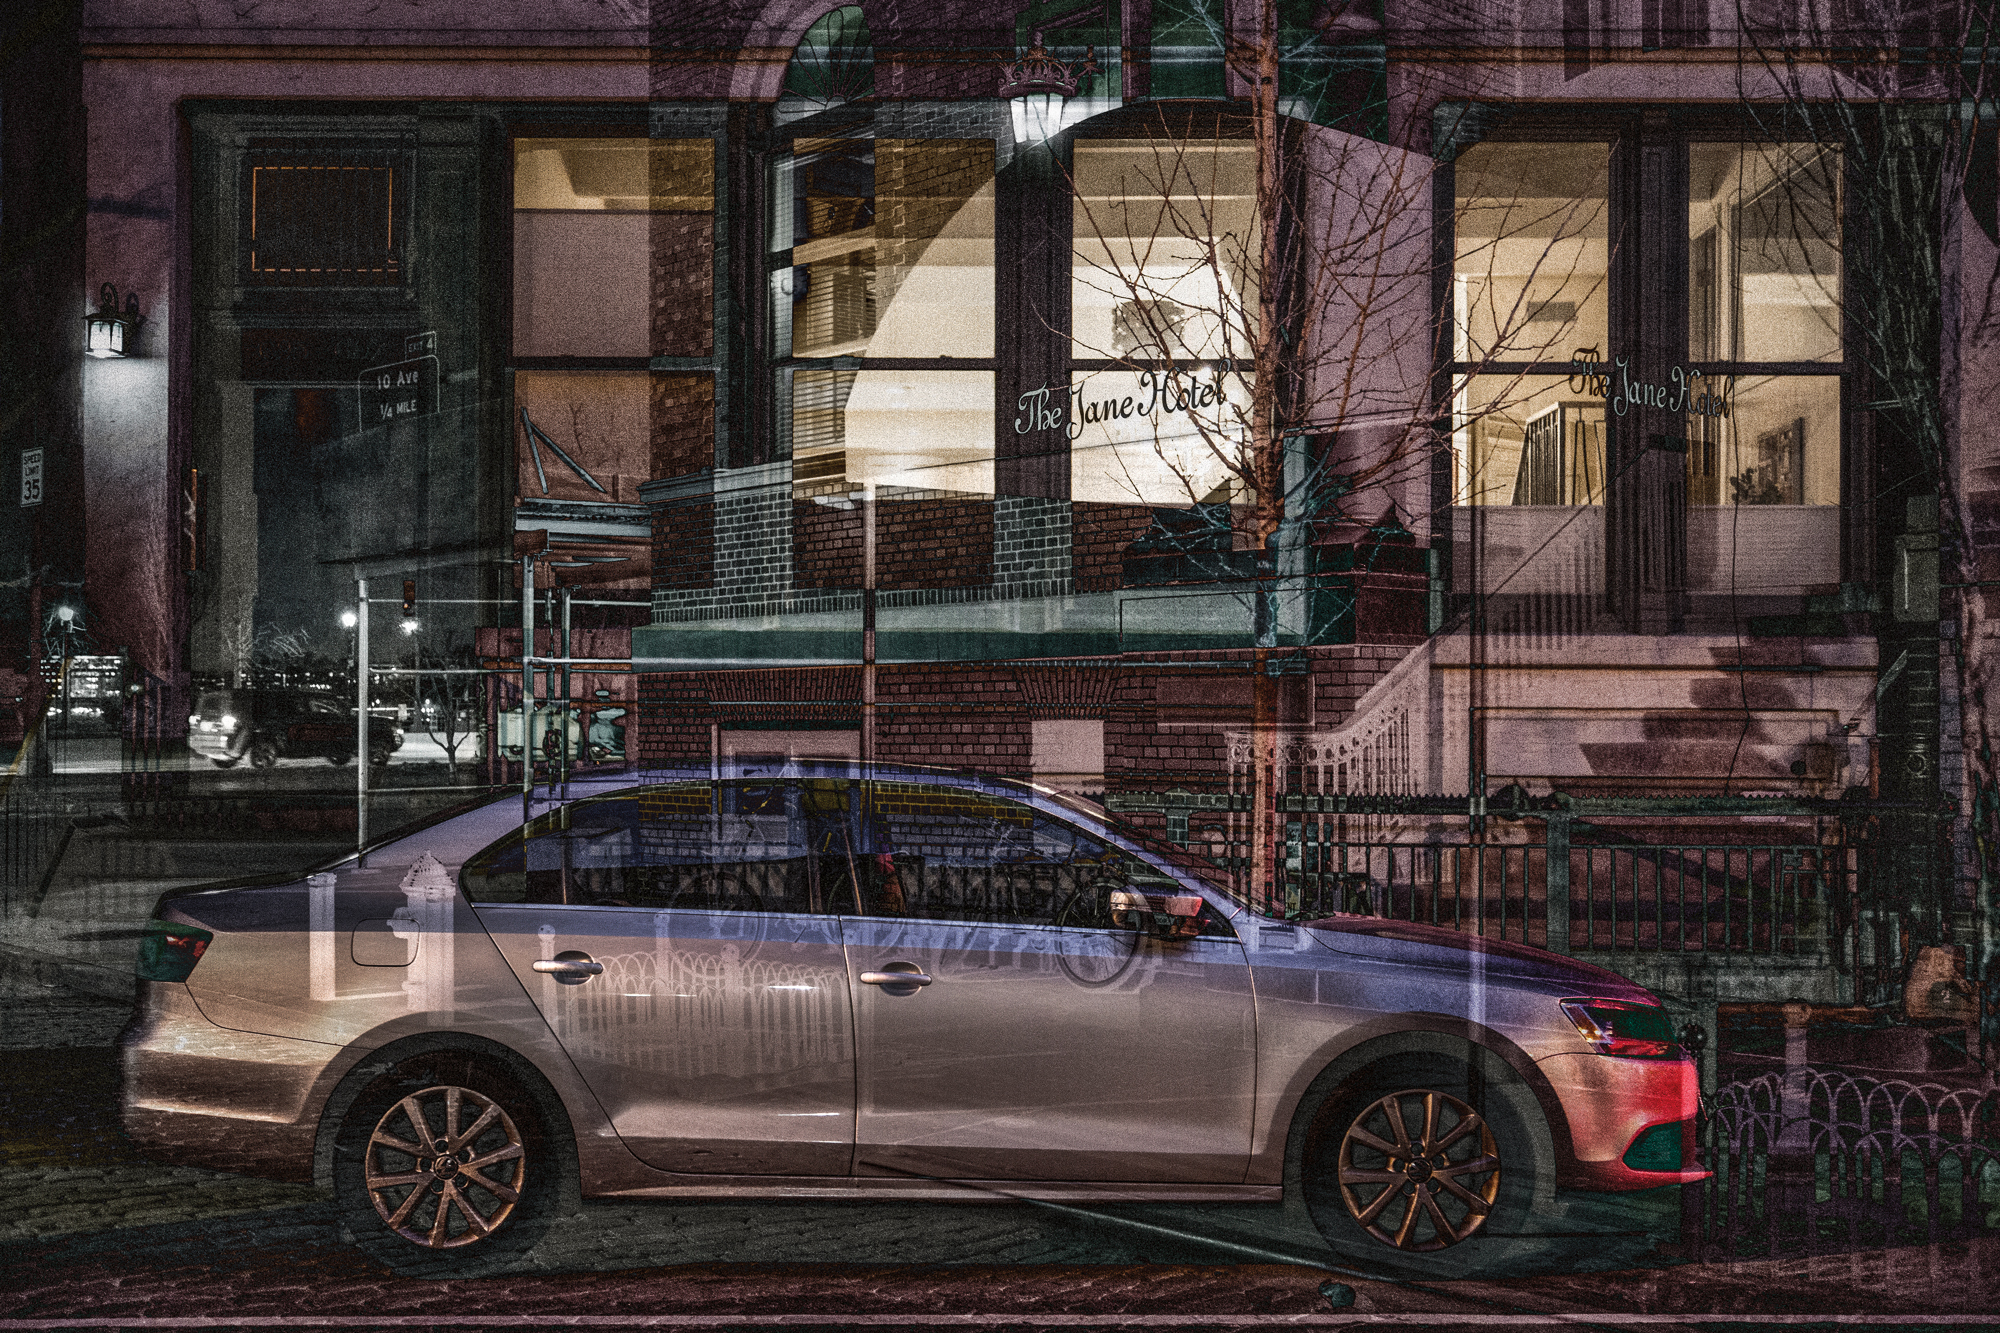 "Jane Street 2017 Image size 48.77 X 32.51cm, 19.2"" X 12.8"" Combination of two images from Greenwich village, New York. Archival digital print on Canson Platine rag. Edition of ten. Signed and numbered on print margin with certificate attached to rear of frame.© Christopher Sheils"